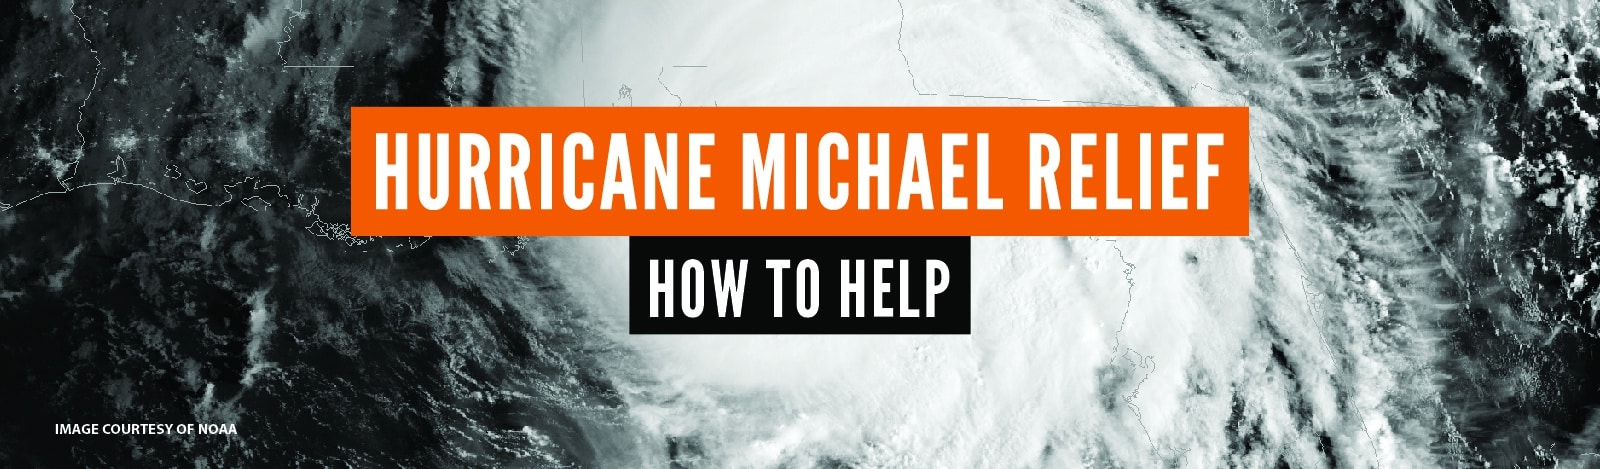 UWCE Offers Help To Communities Impacted By Hurricane Michael